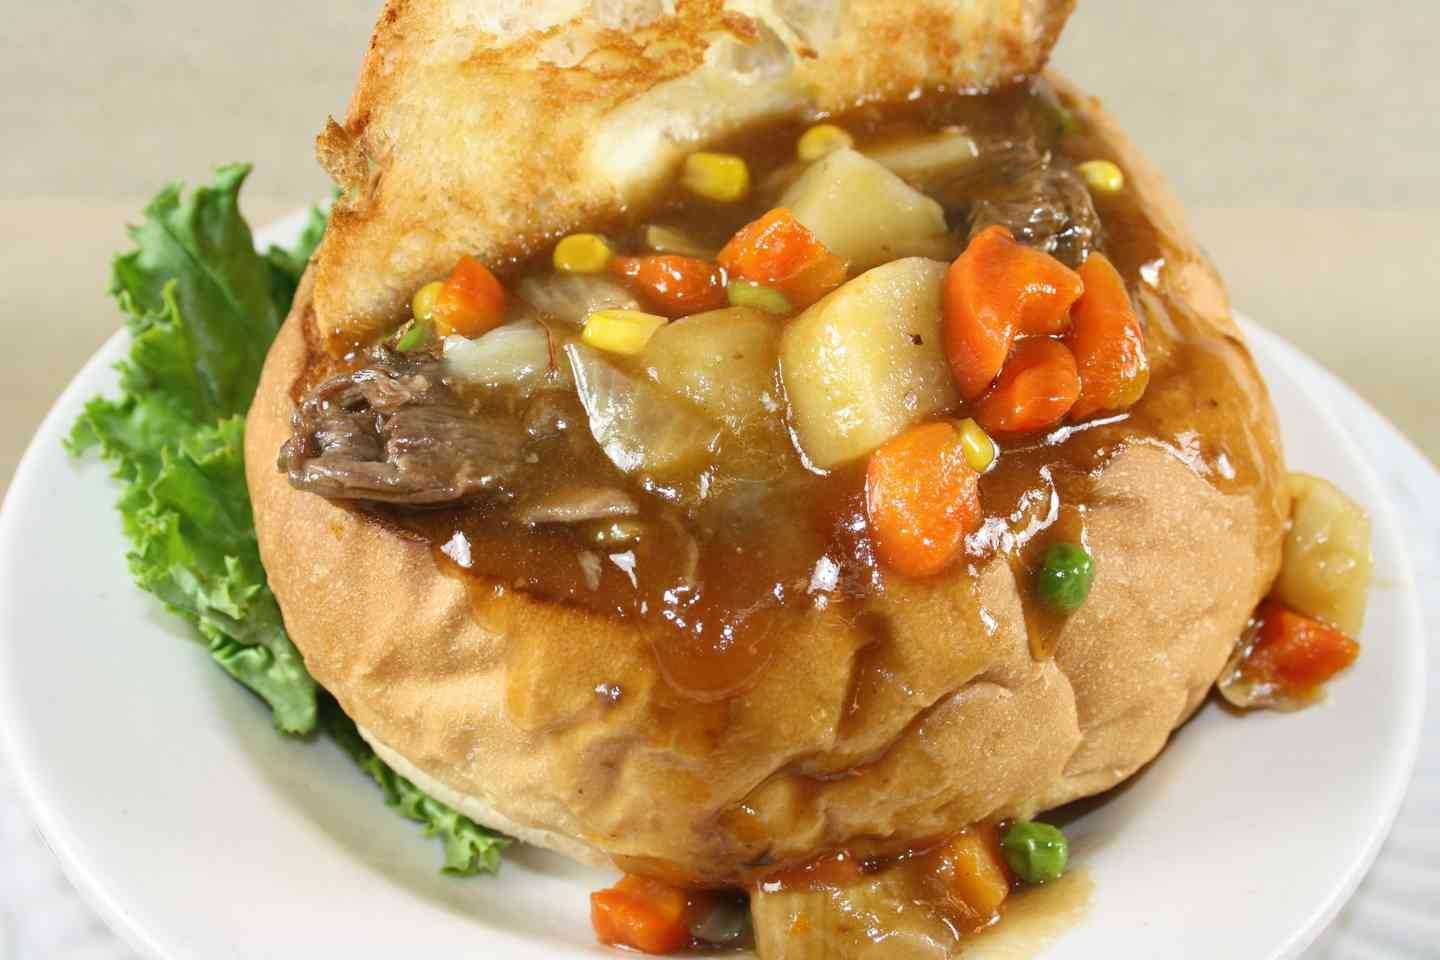 Homemade Beef Stew in Bread Bowl